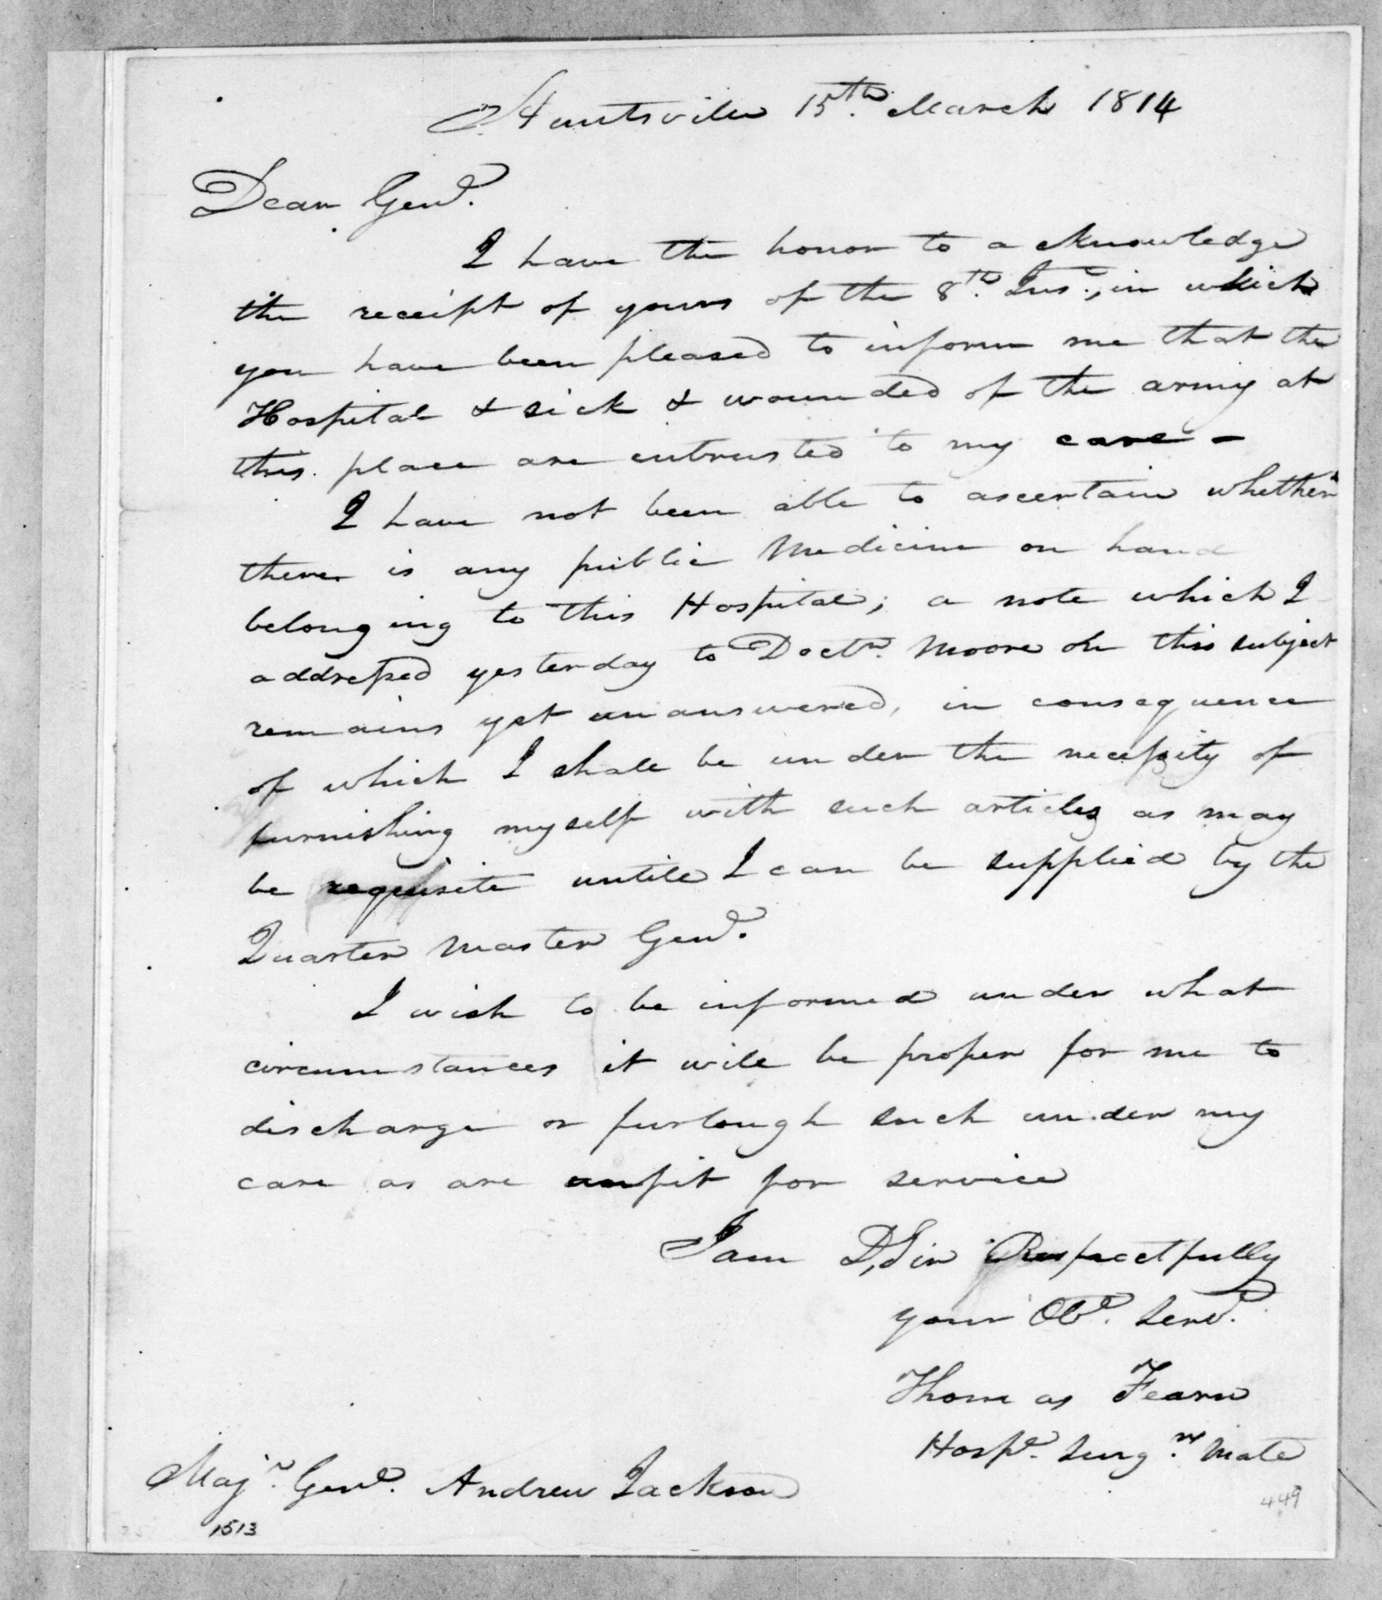 Thomas Fearn to Andrew Jackson, March 15, 1814